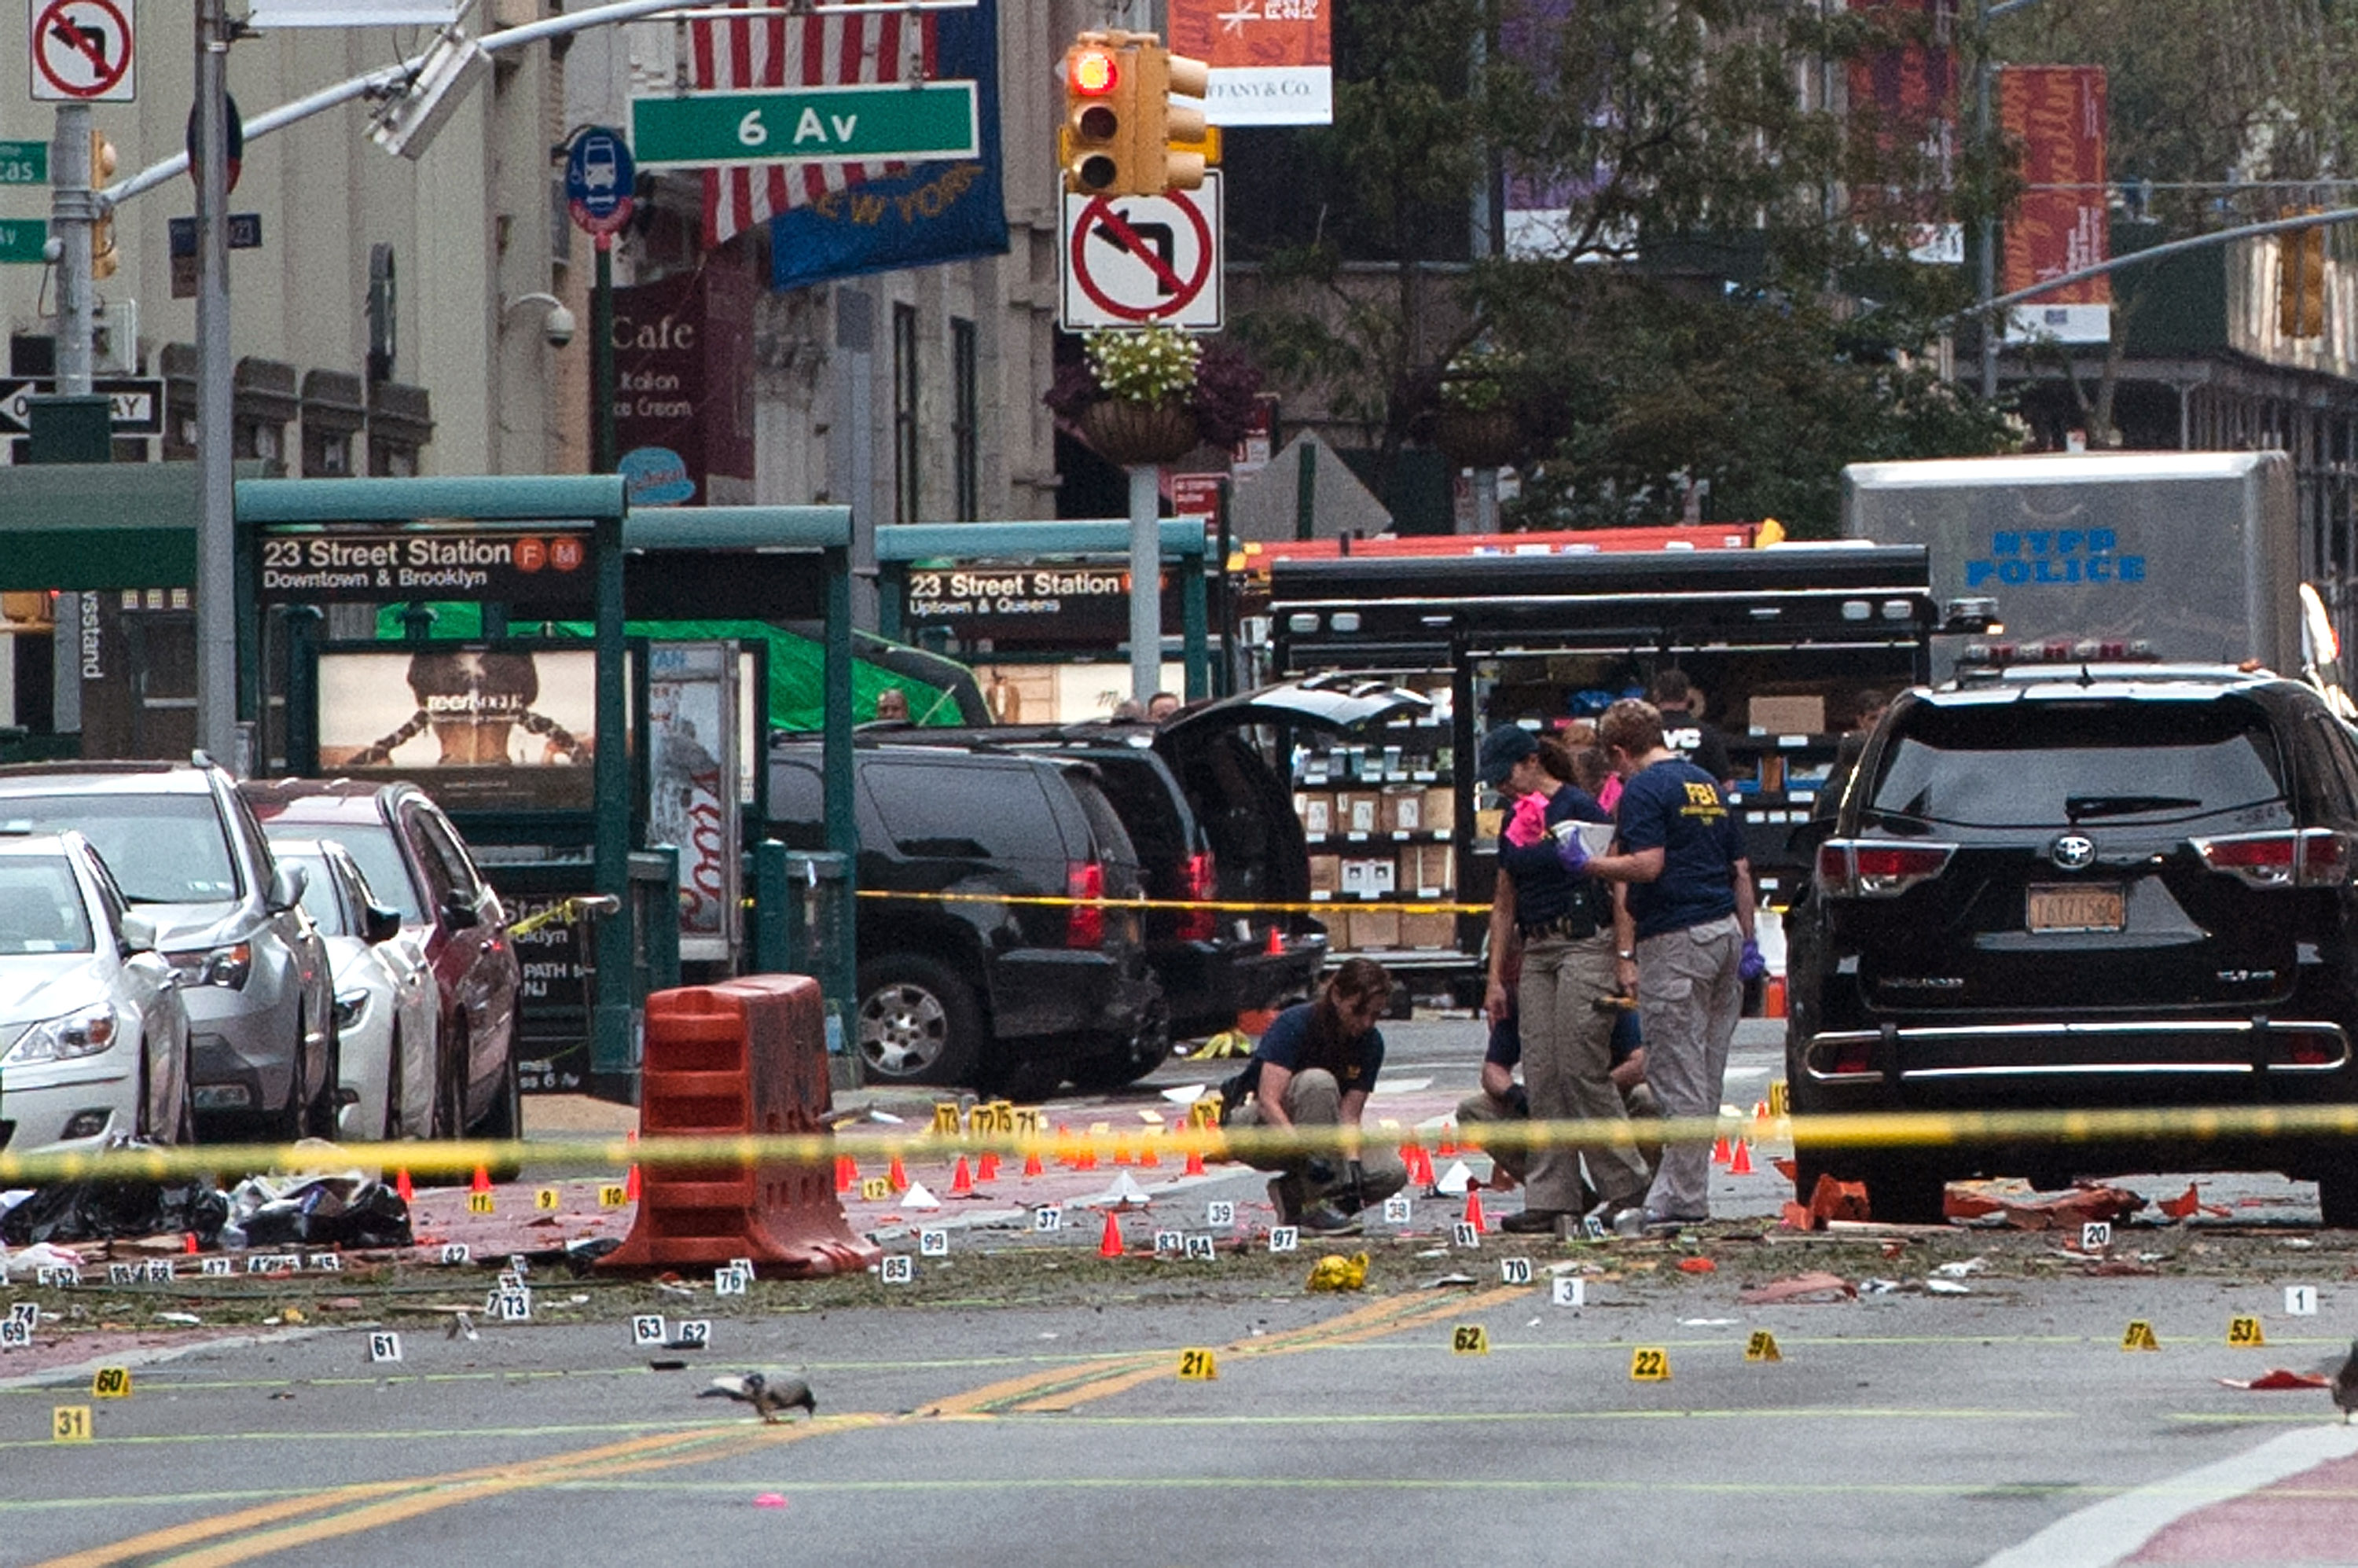 Five New Explosive Devices Discovered In New Jersey GettyImages 607521892